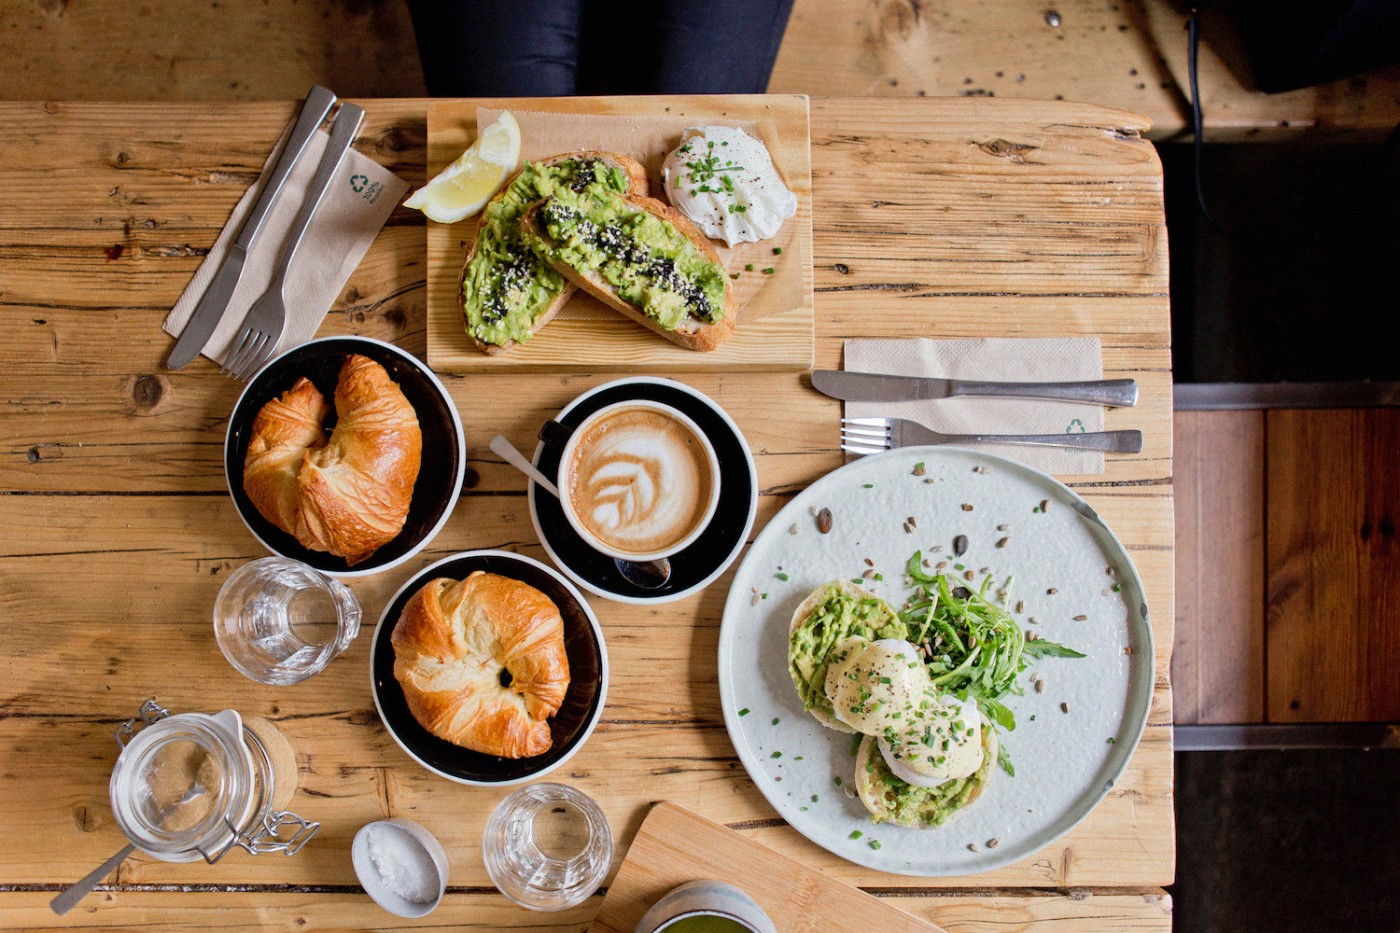 Kaffeebar Berlin – <em>breakfast / brunch in Berlin</em>